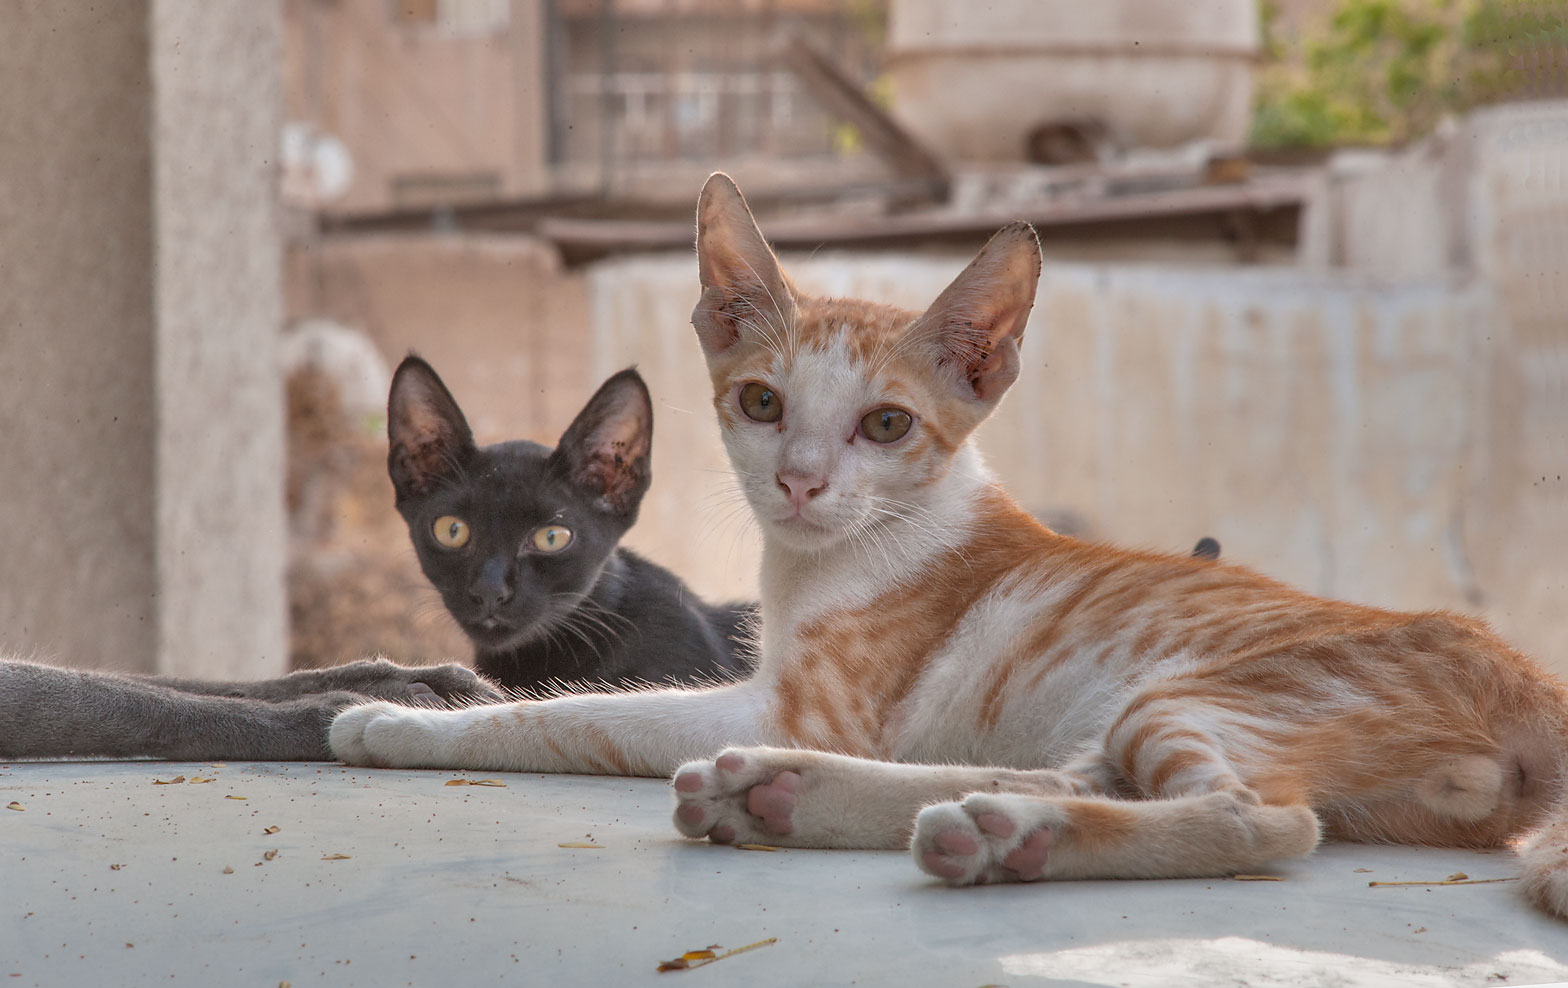 Pair of cats looking from a car on Al Diwan St. in Musheirib (Msheireb) area. Doha, Qatar